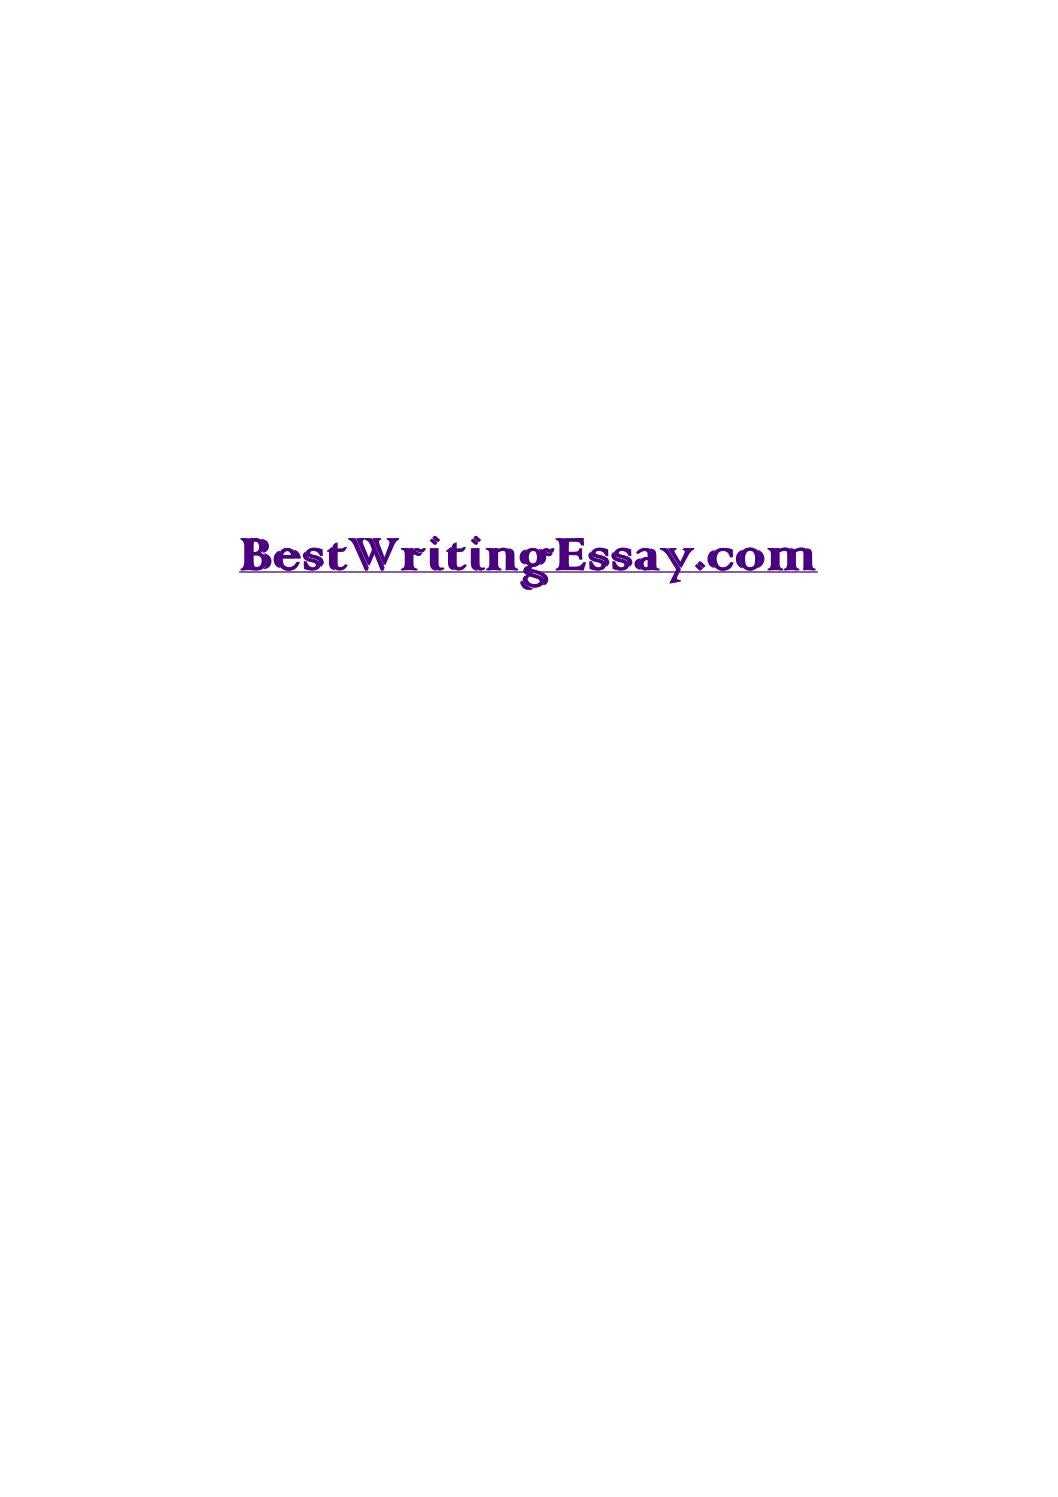 Top letter writer services for college